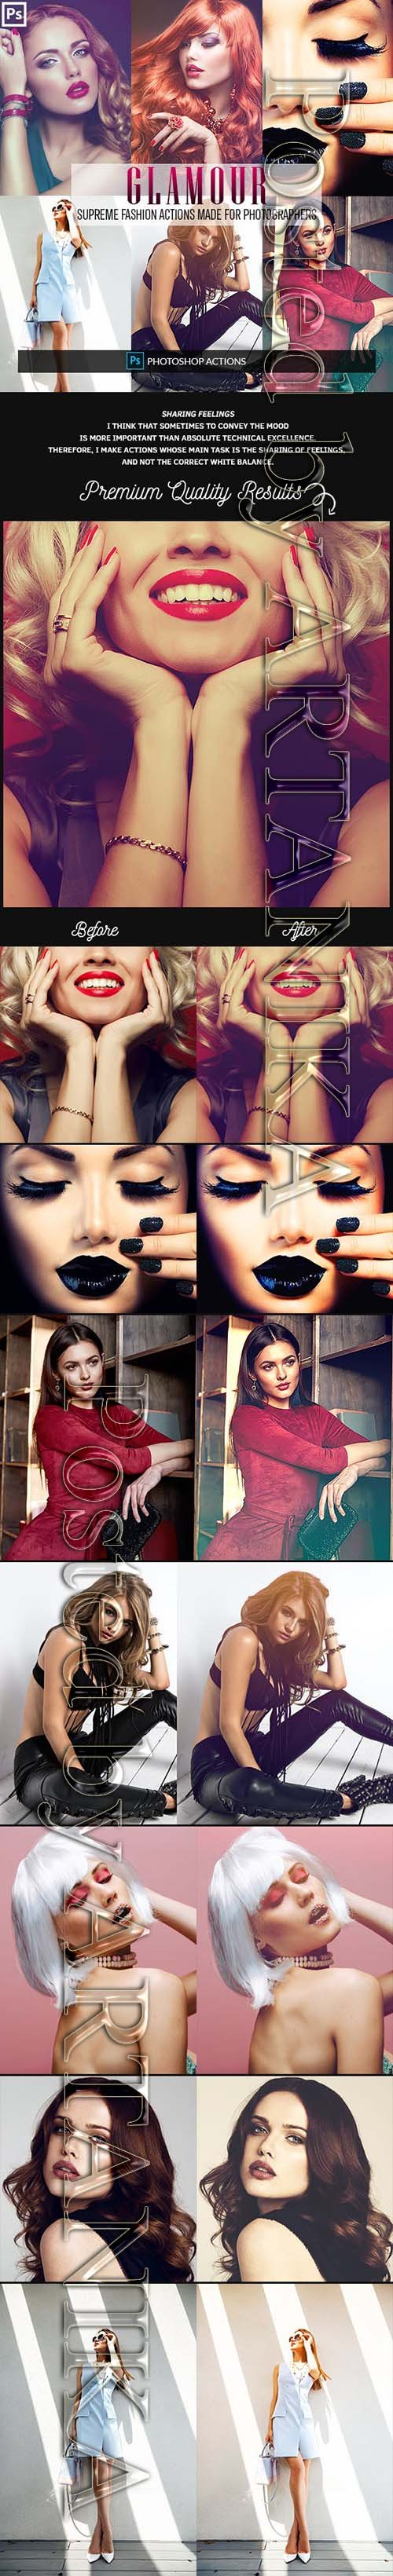 GraphicRiver - Glamour Fashion Photoshop Actions 23156099